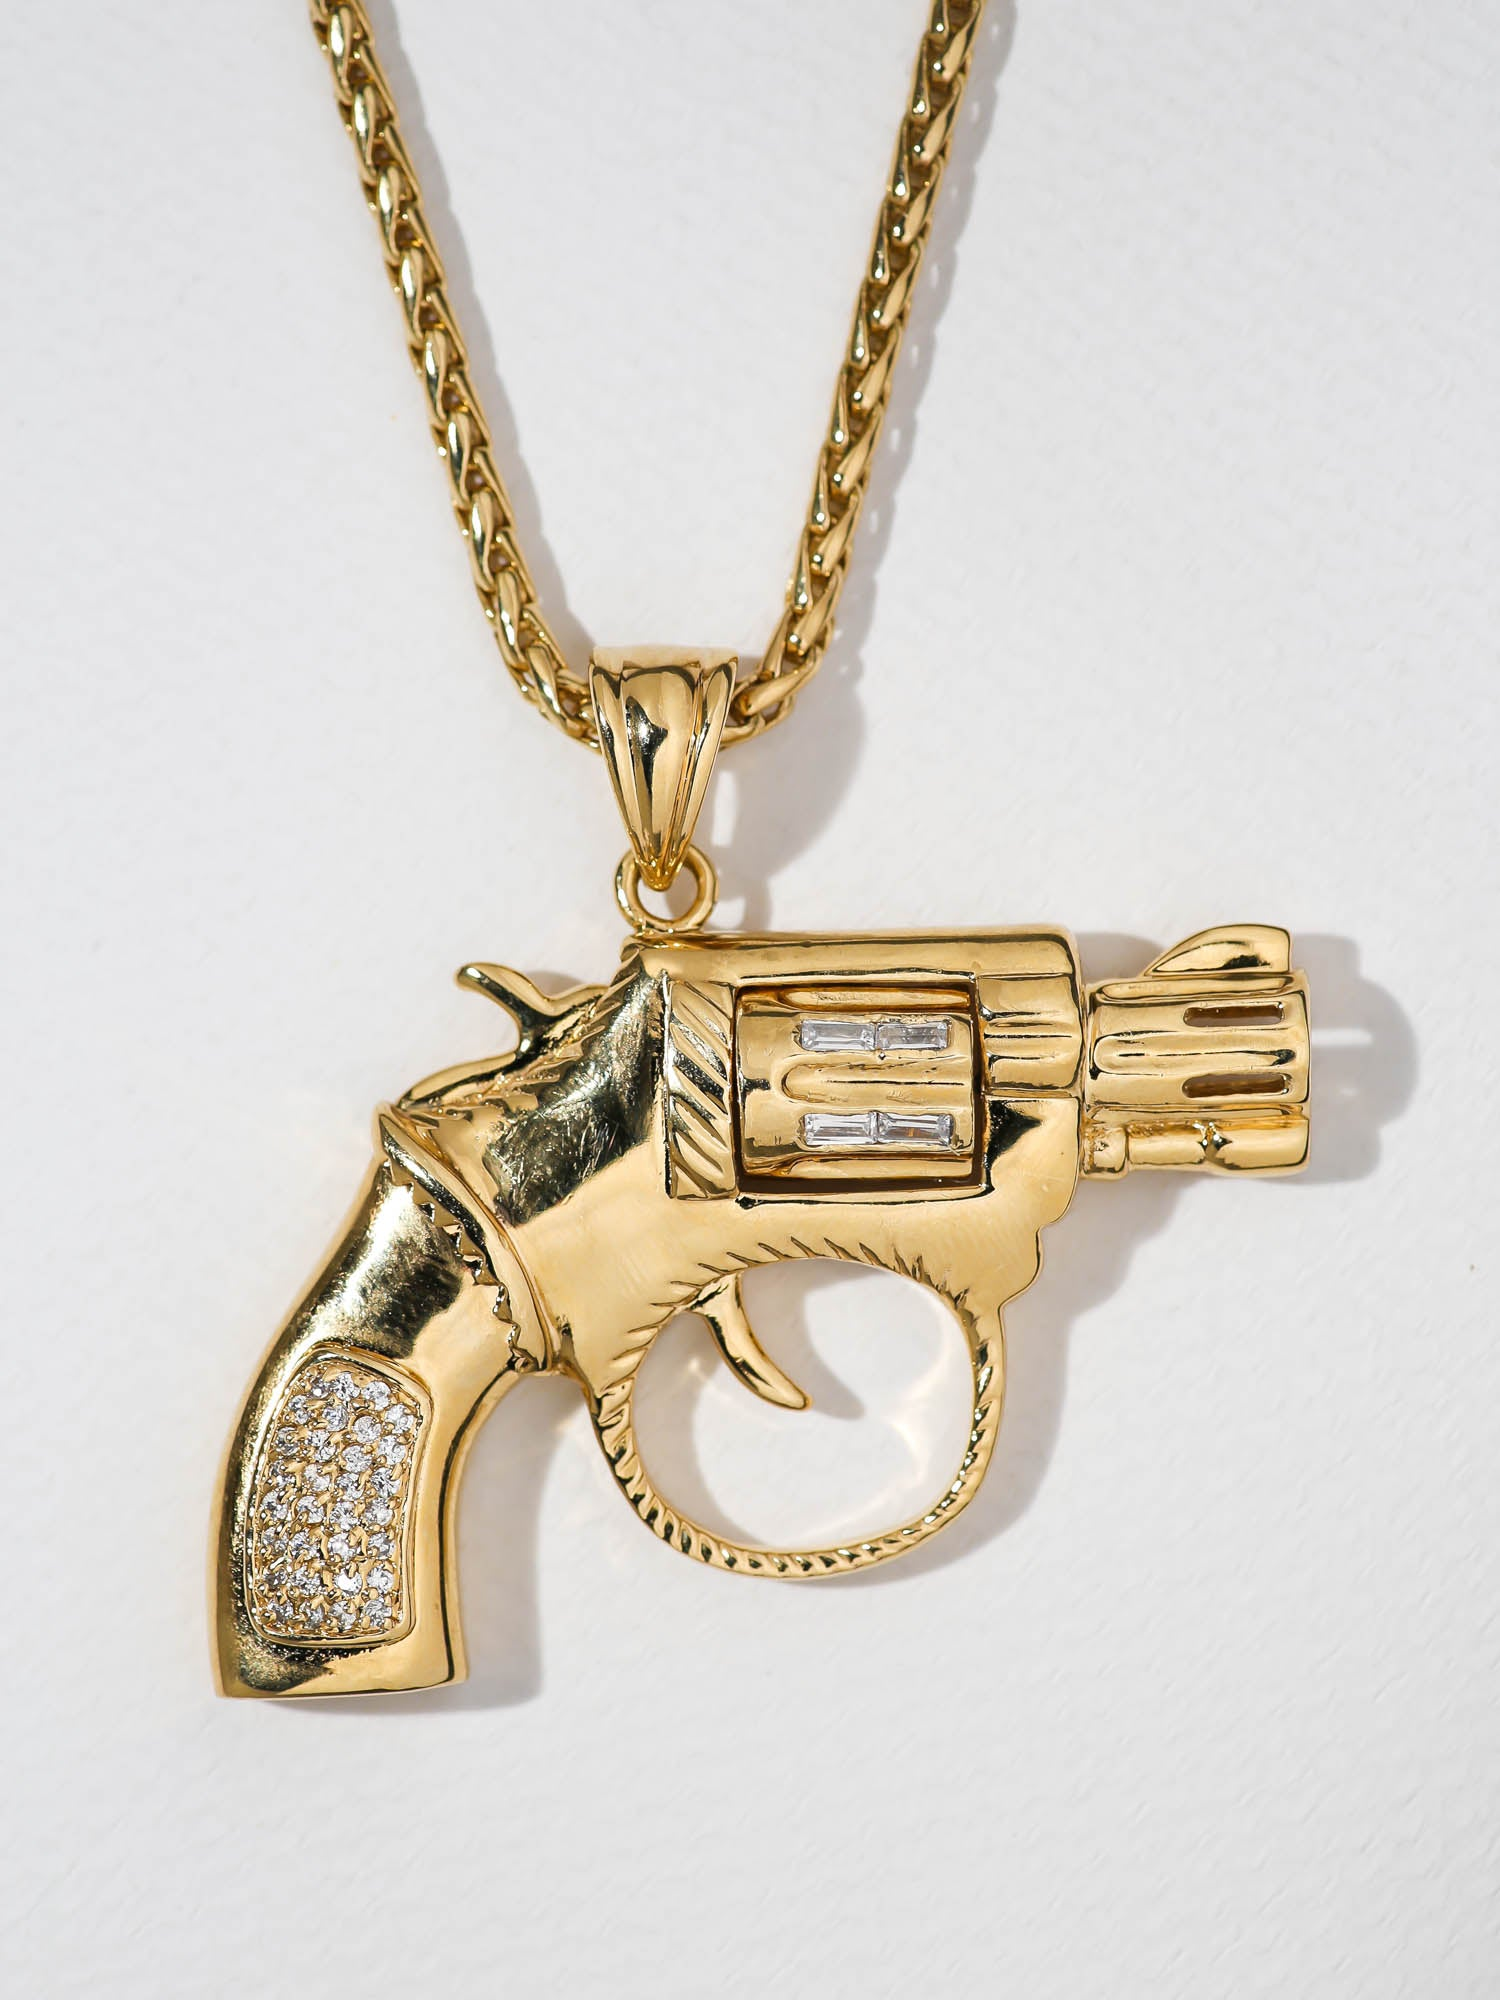 The Revolver Necklace